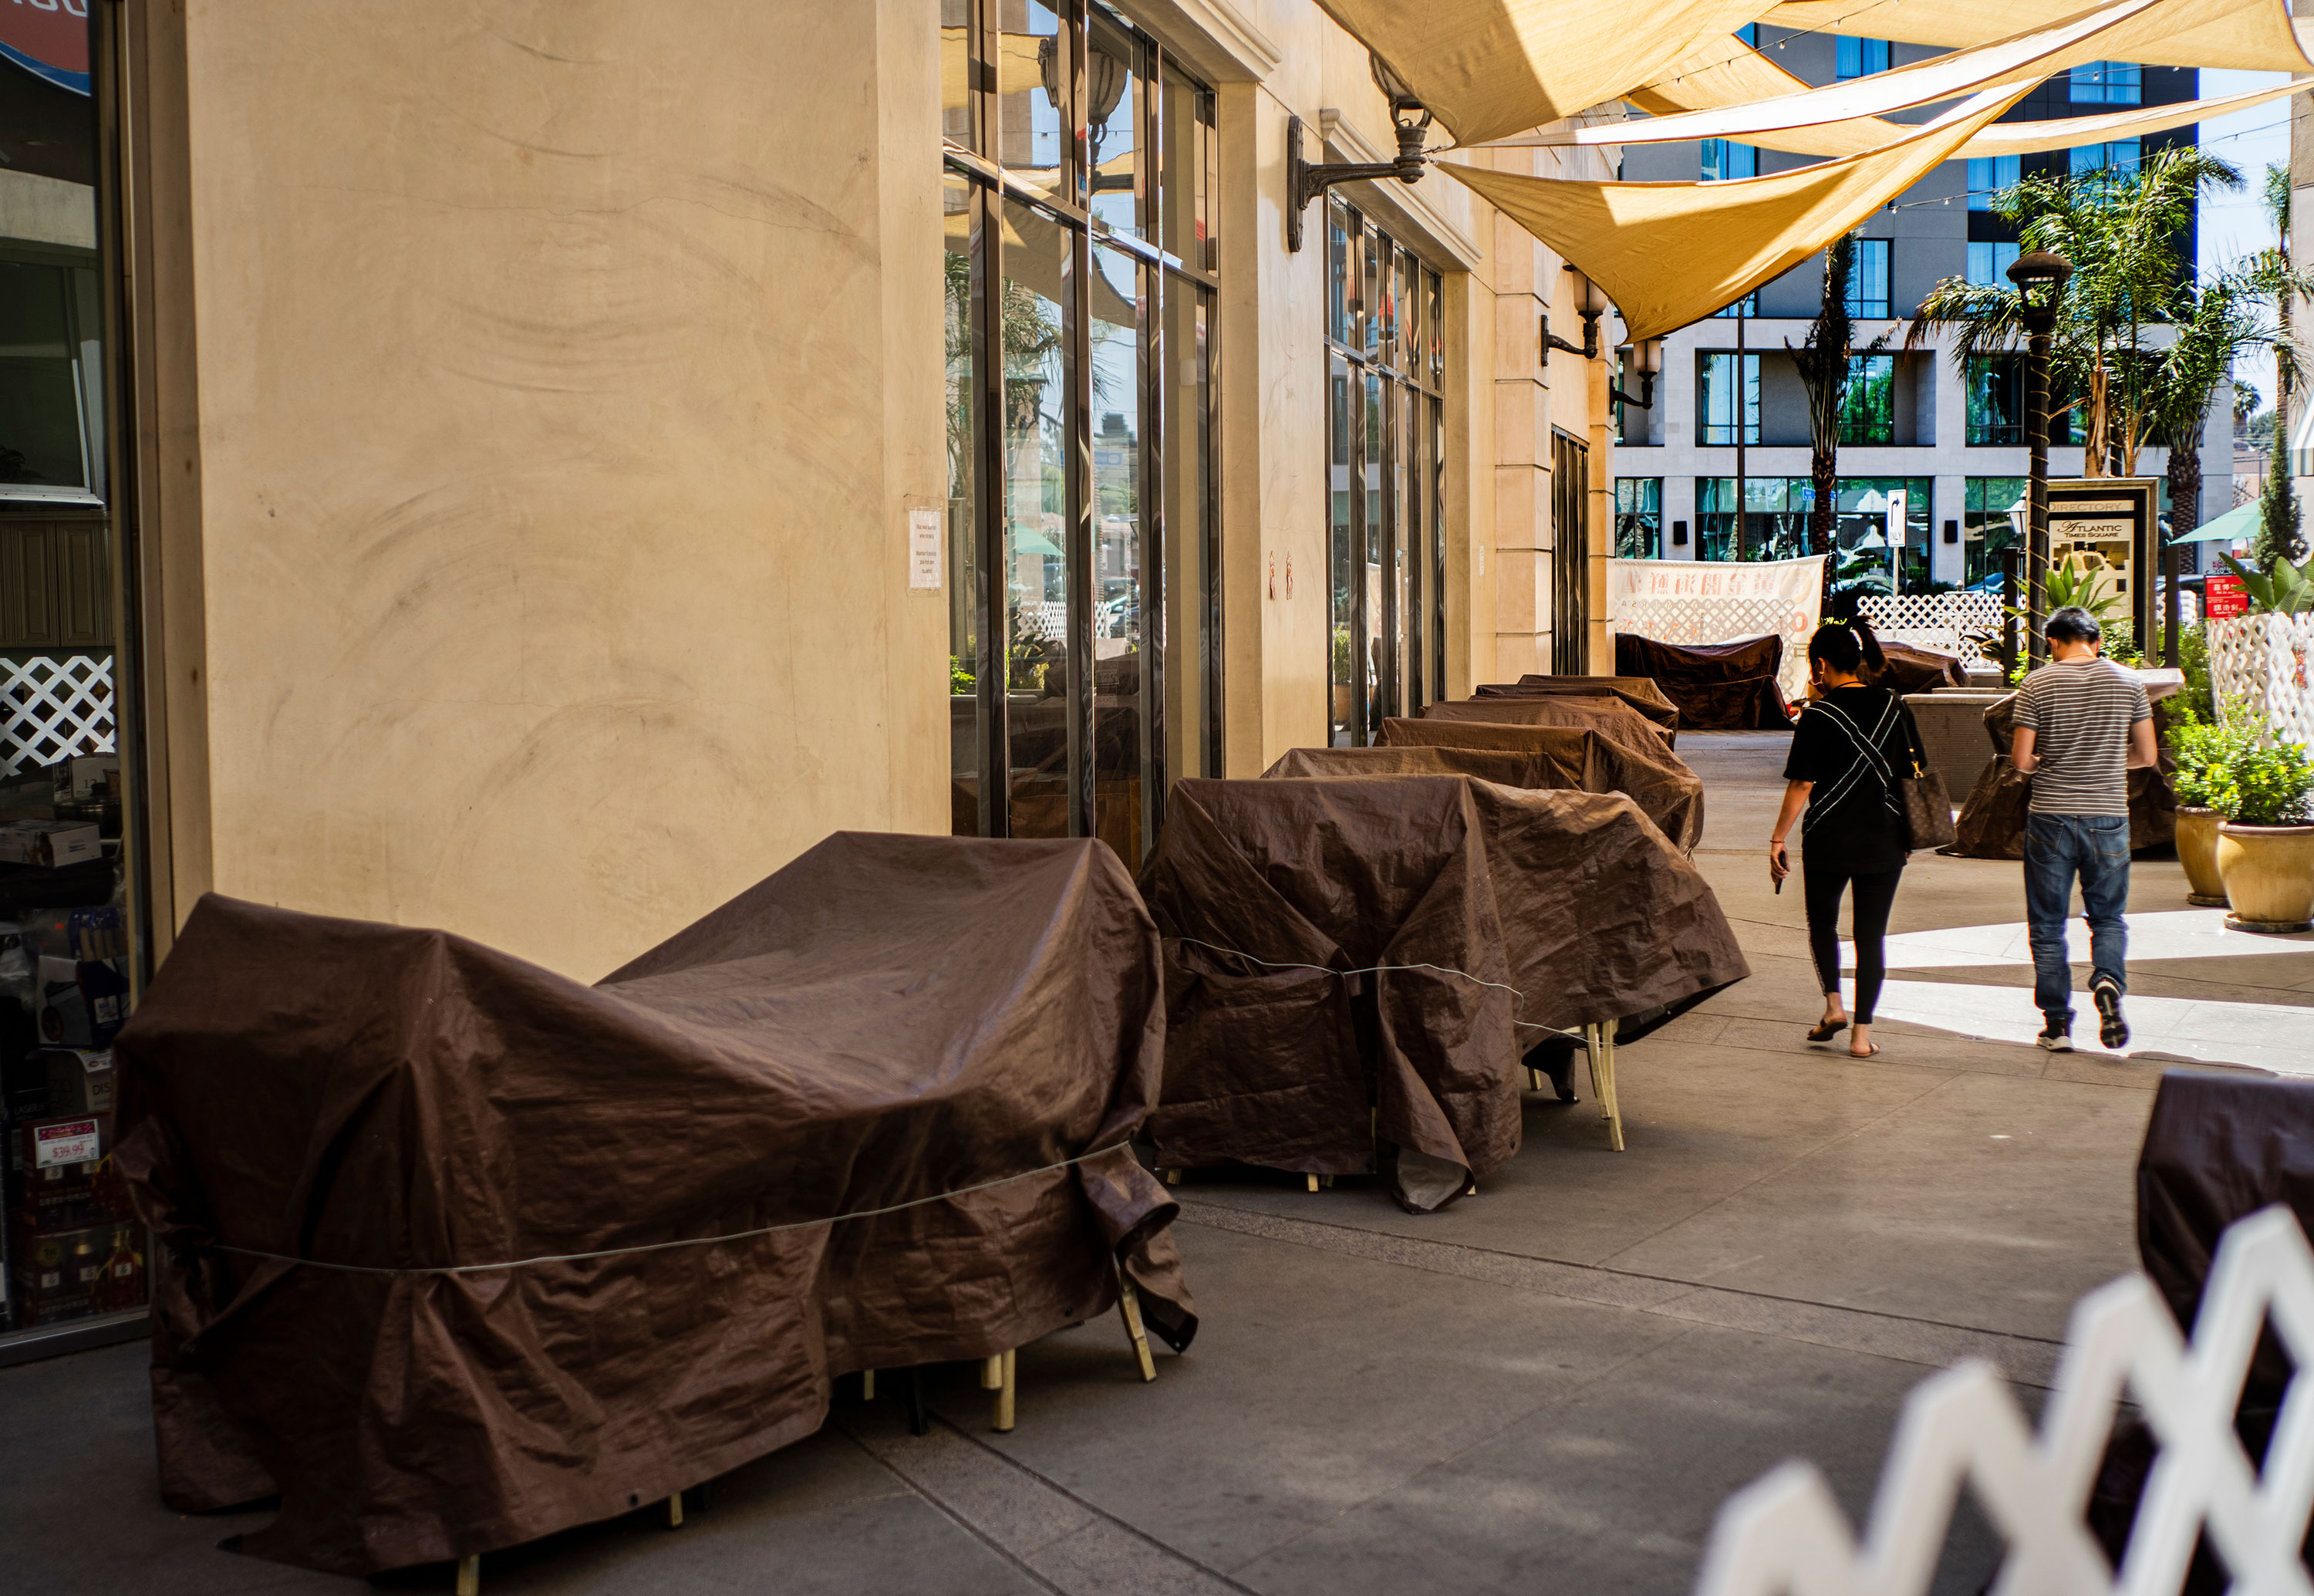 Restaurant chairs and tables remain covered at an outdoor mall in Los Angeles on Friday, June 11.